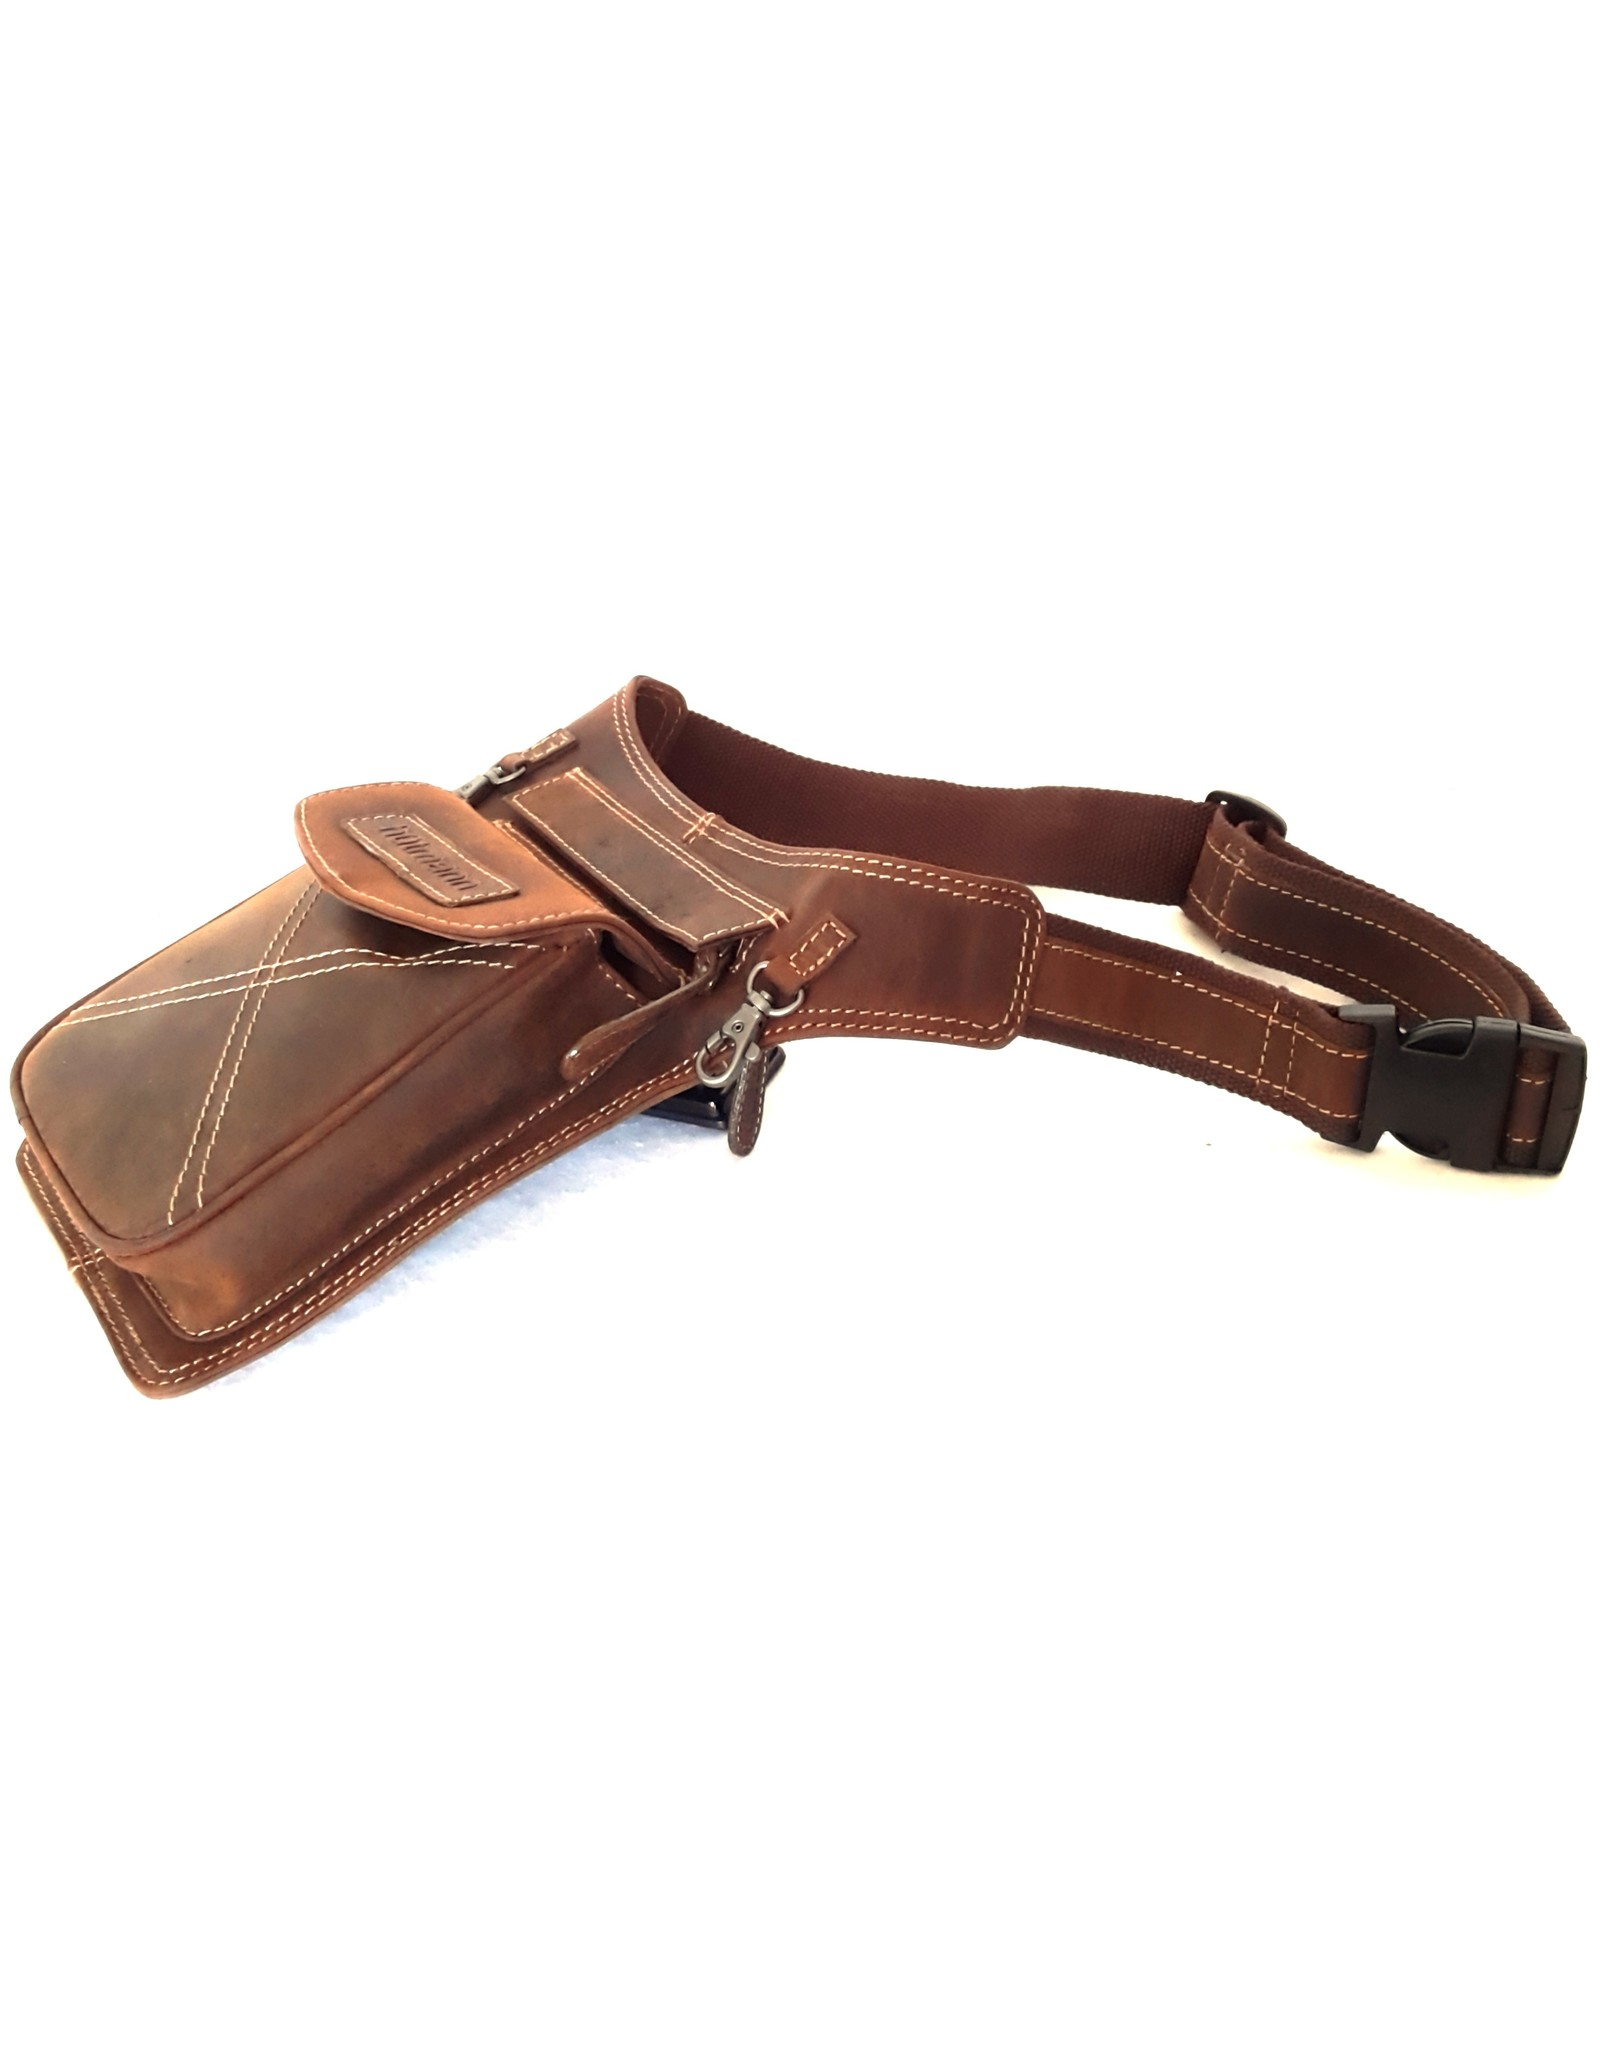 Hutmann Leather Festival bags, waist bags and belt bags - Hütmann hip bag tanned leather brown